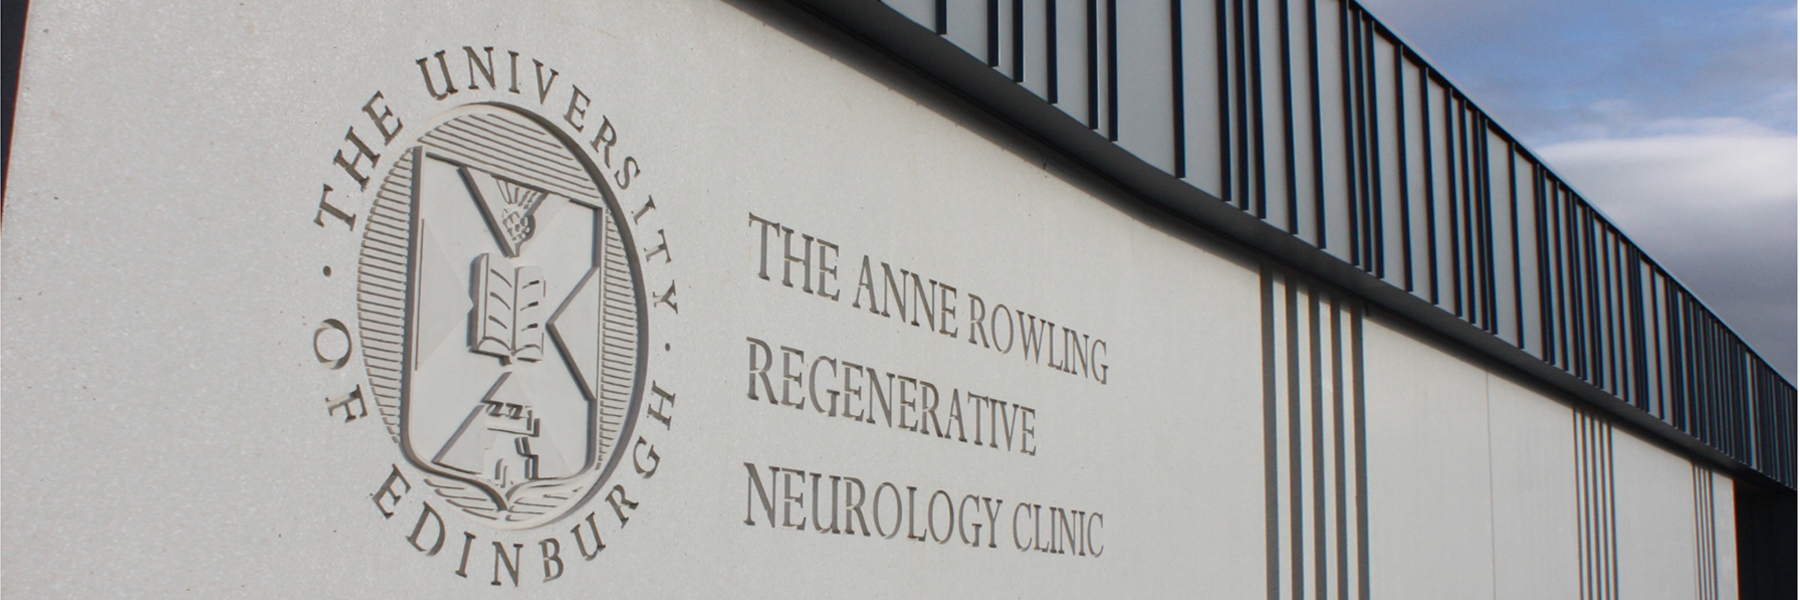 Exterior shot of Anne Rowling Regenerative Neurology Clinic